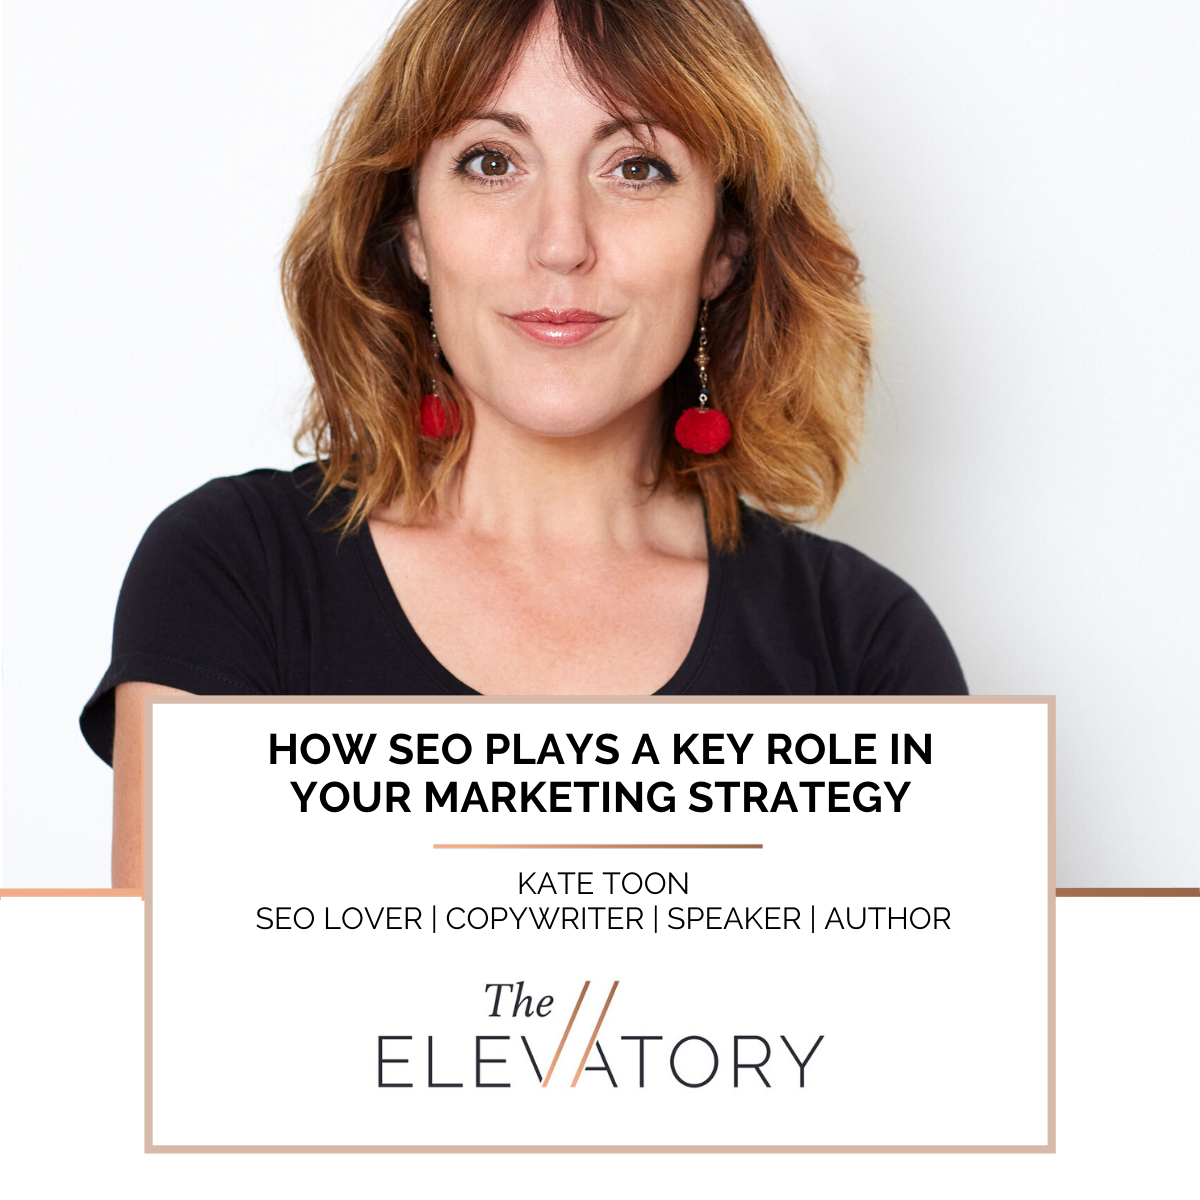 How SEO plays a key role in your marketing strategy with Kate Toon